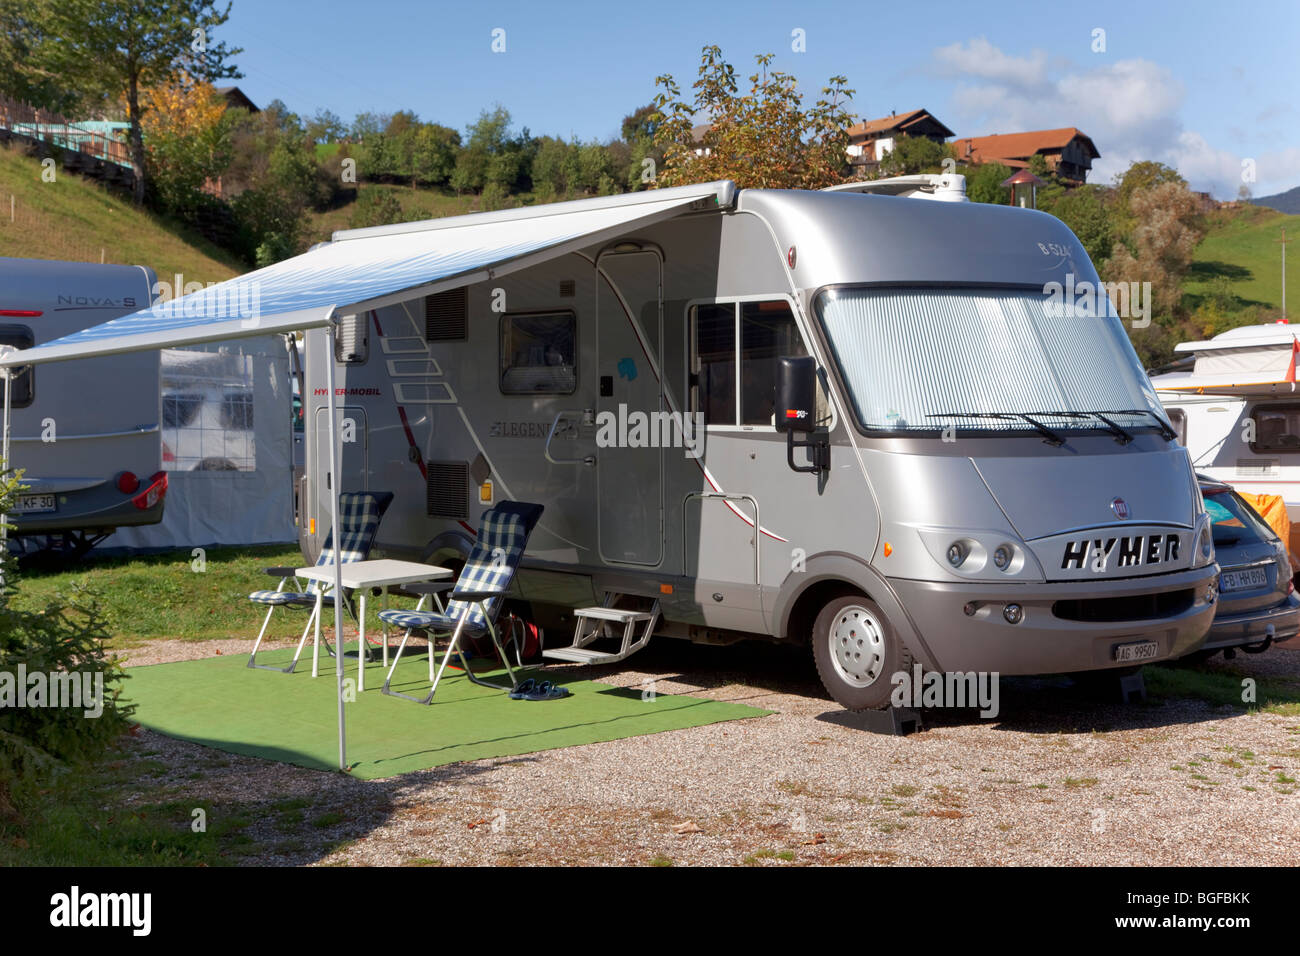 Hymer Camper van at Camping in Northern Italy - Stock Image